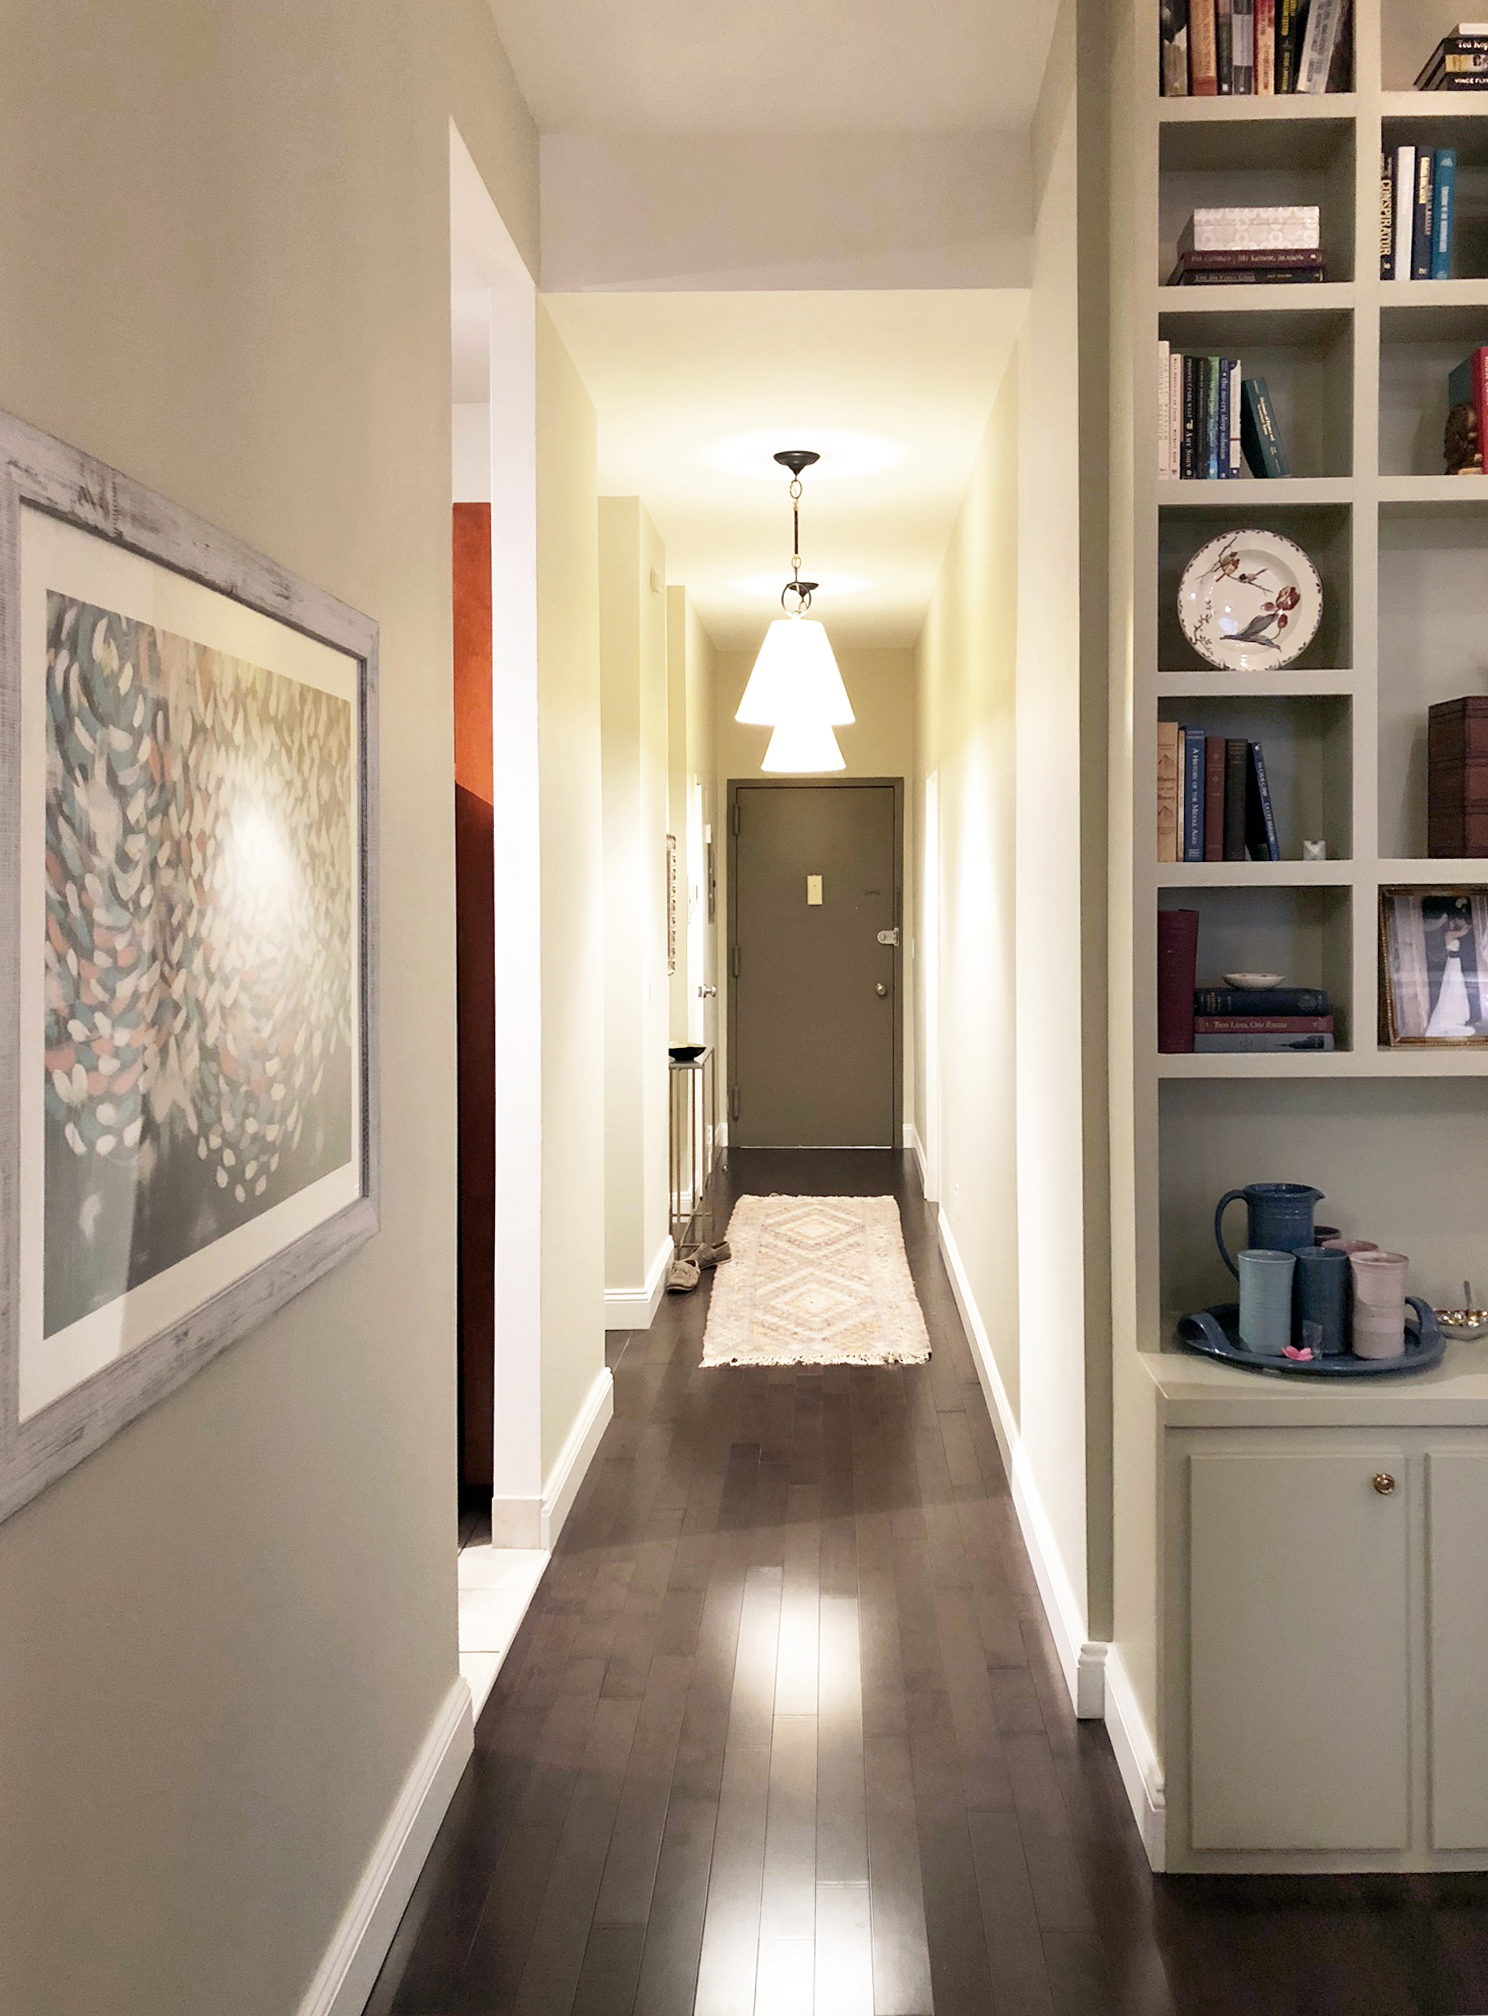 BROOKLYN HEIGHTS RENOVATION   Learn More